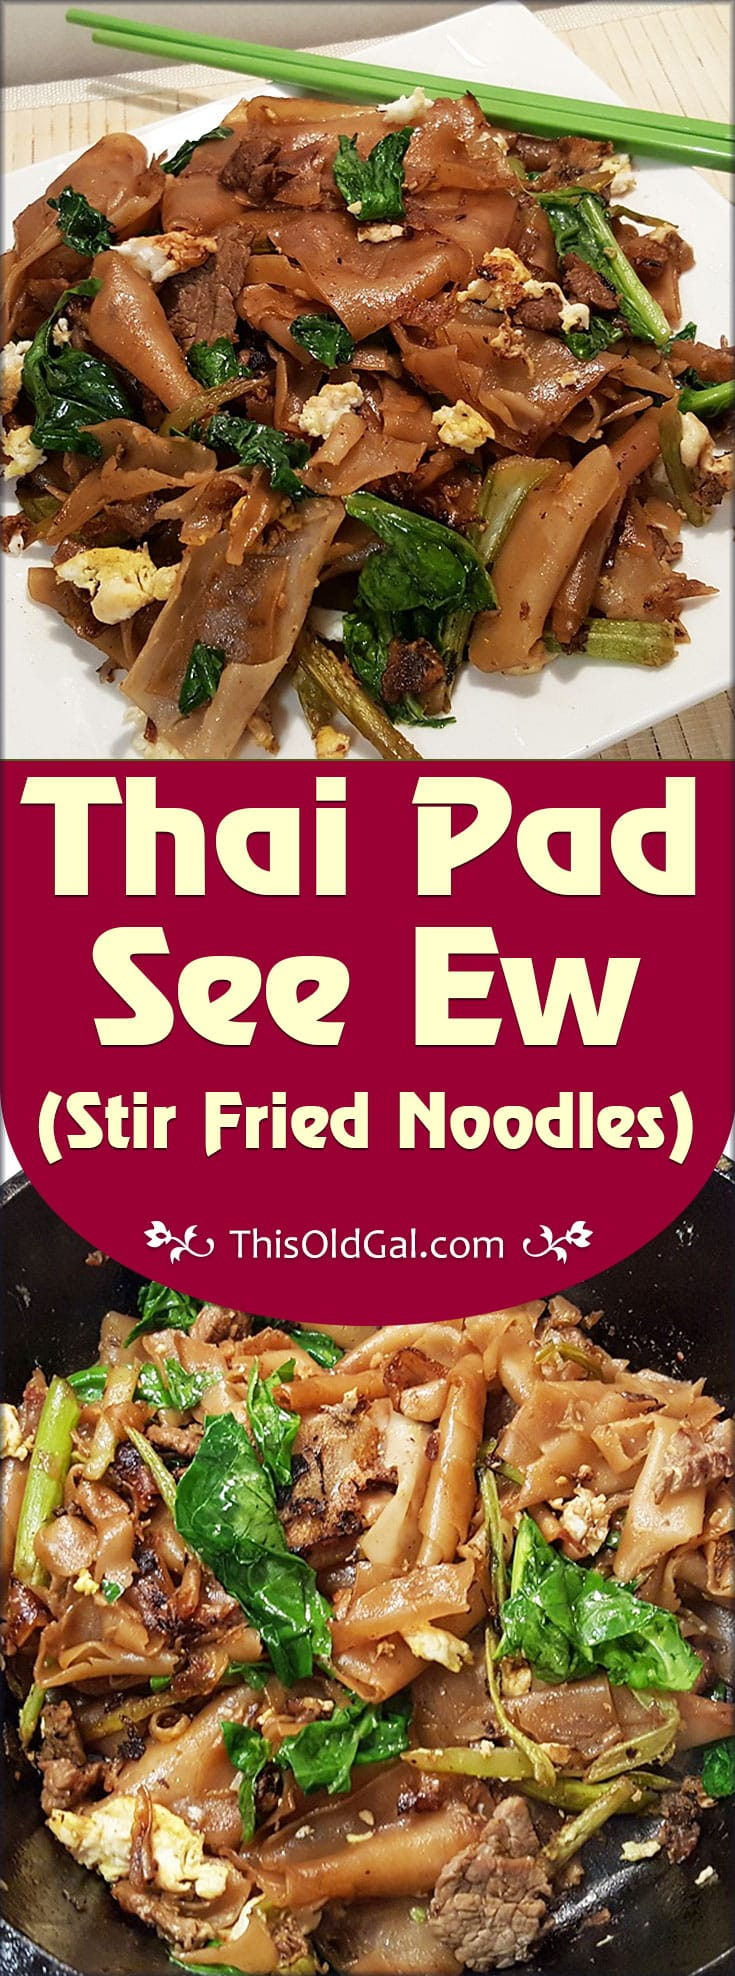 Thai Pad See Ew (Stir Fried Noodles)